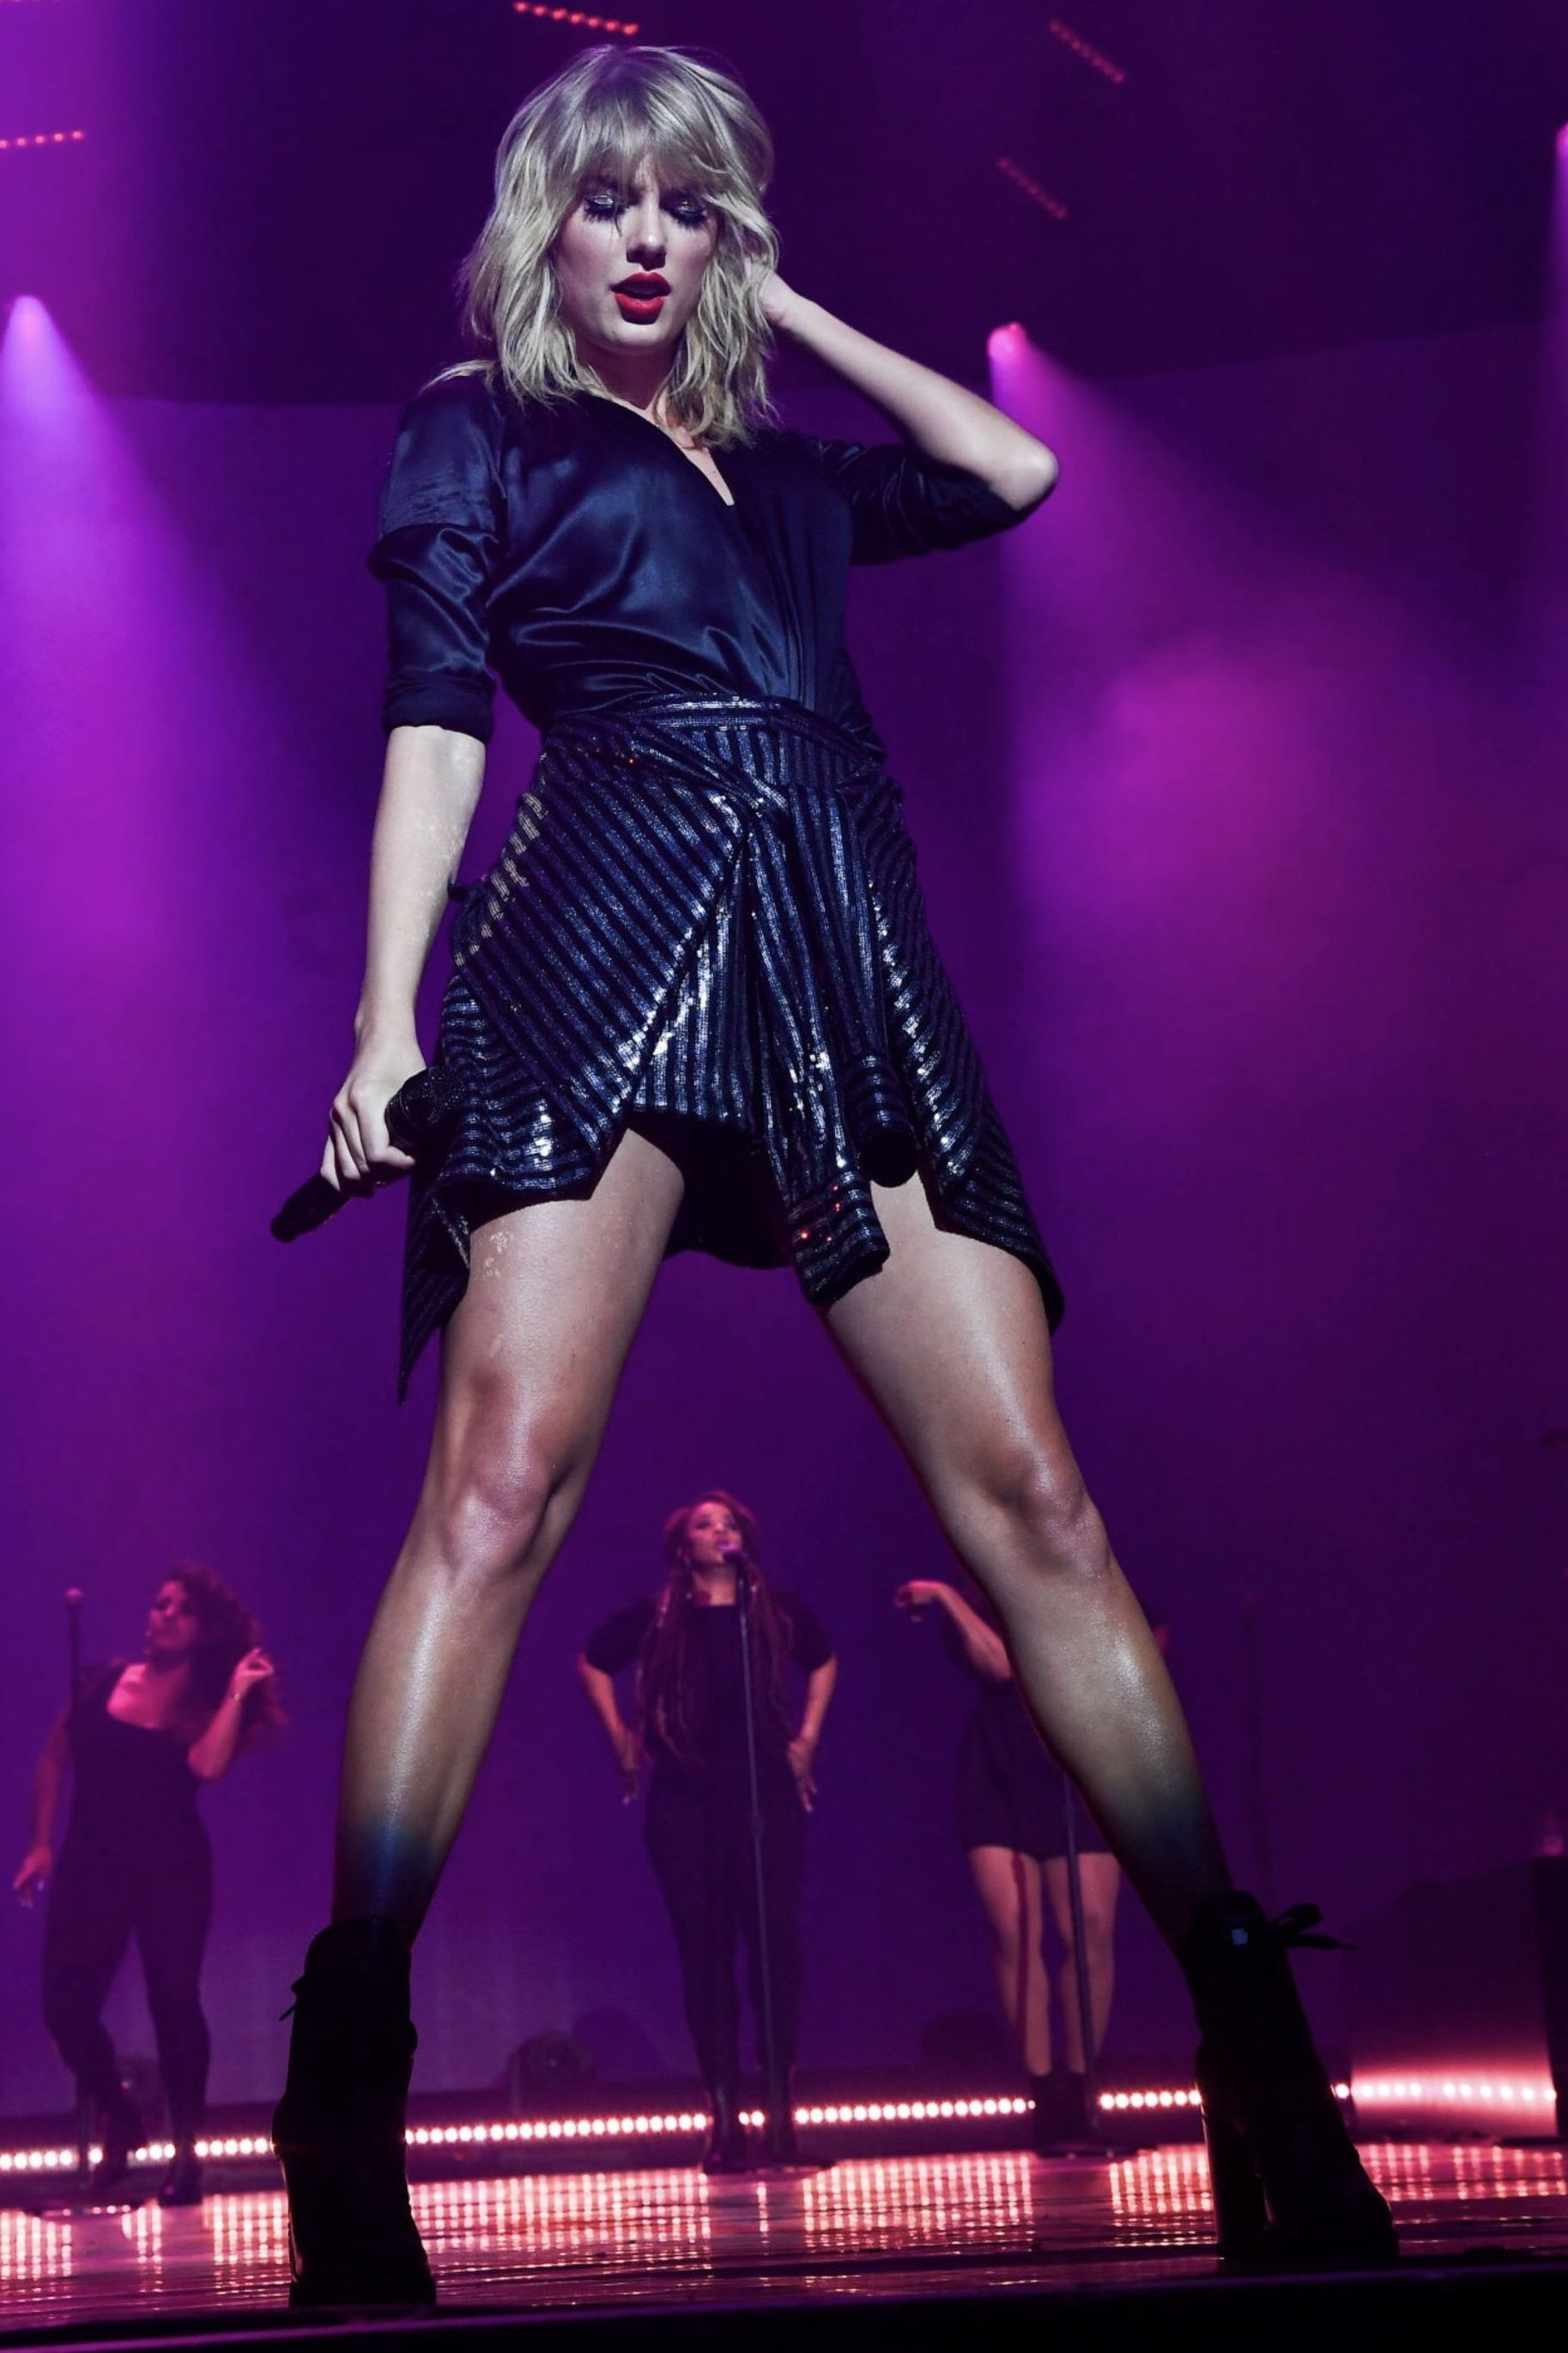 City Of Lover Concert Taylor Swift Outfits Taylor Swift Concert Taylor Swift Hot